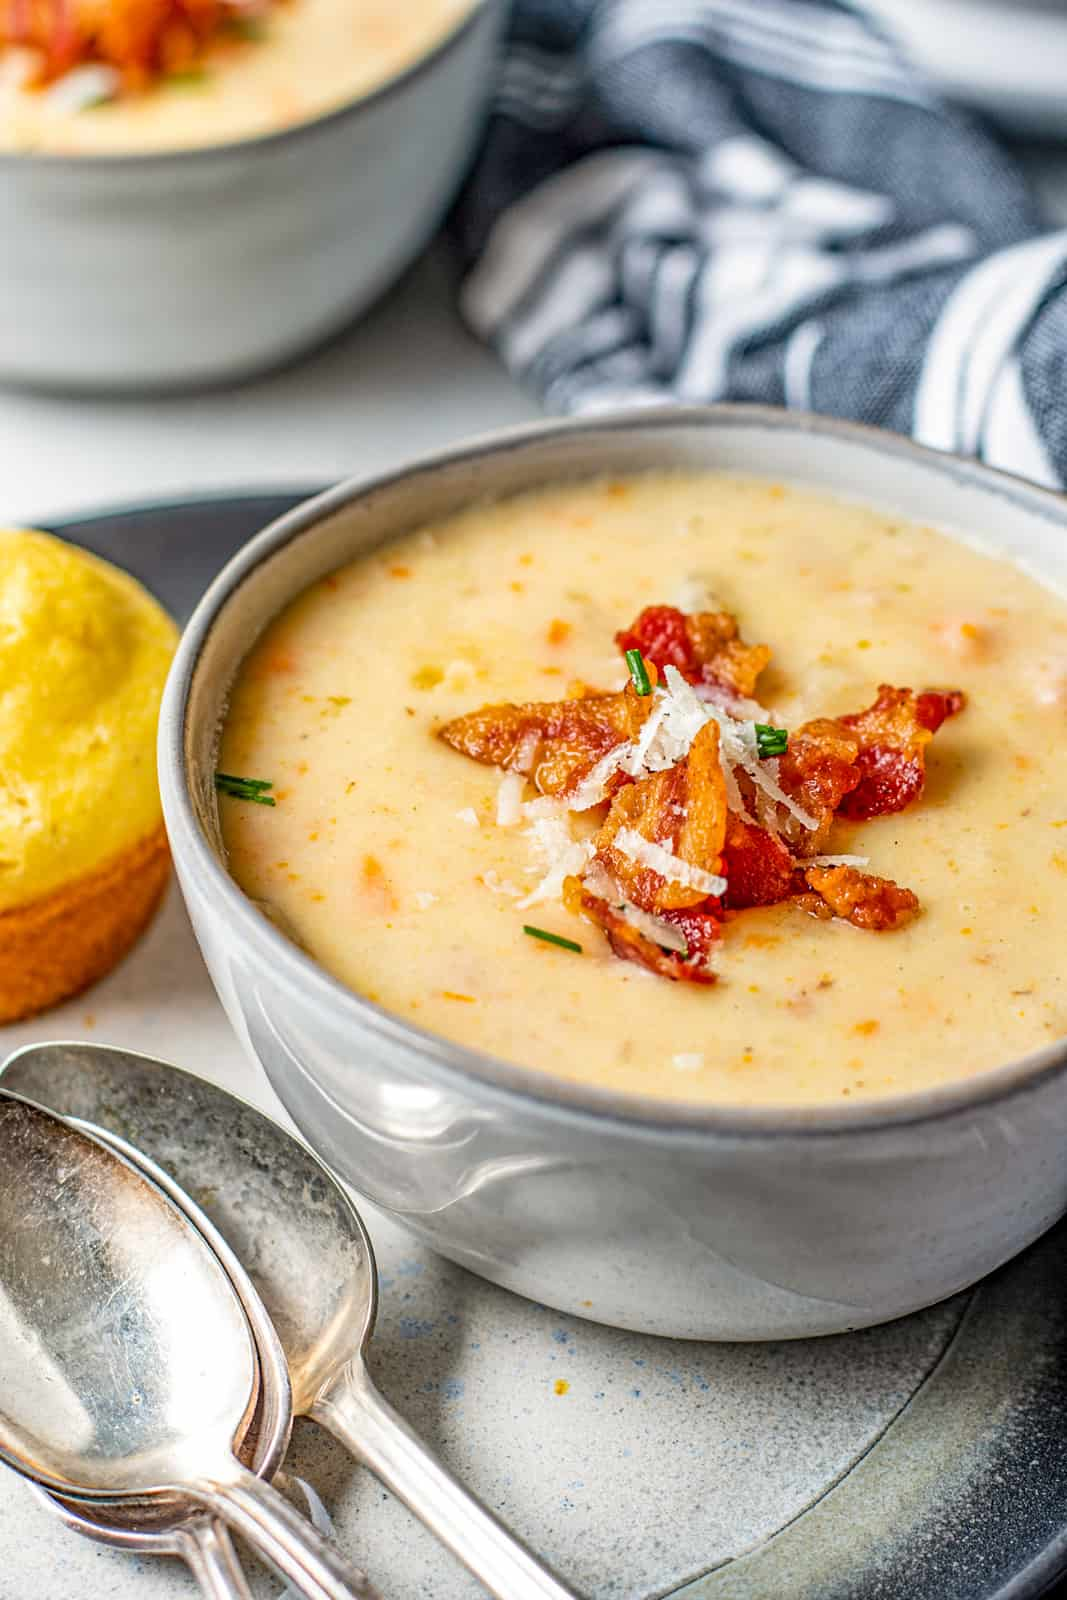 Bowl of soup with bacon and cheese on platter with two spoons